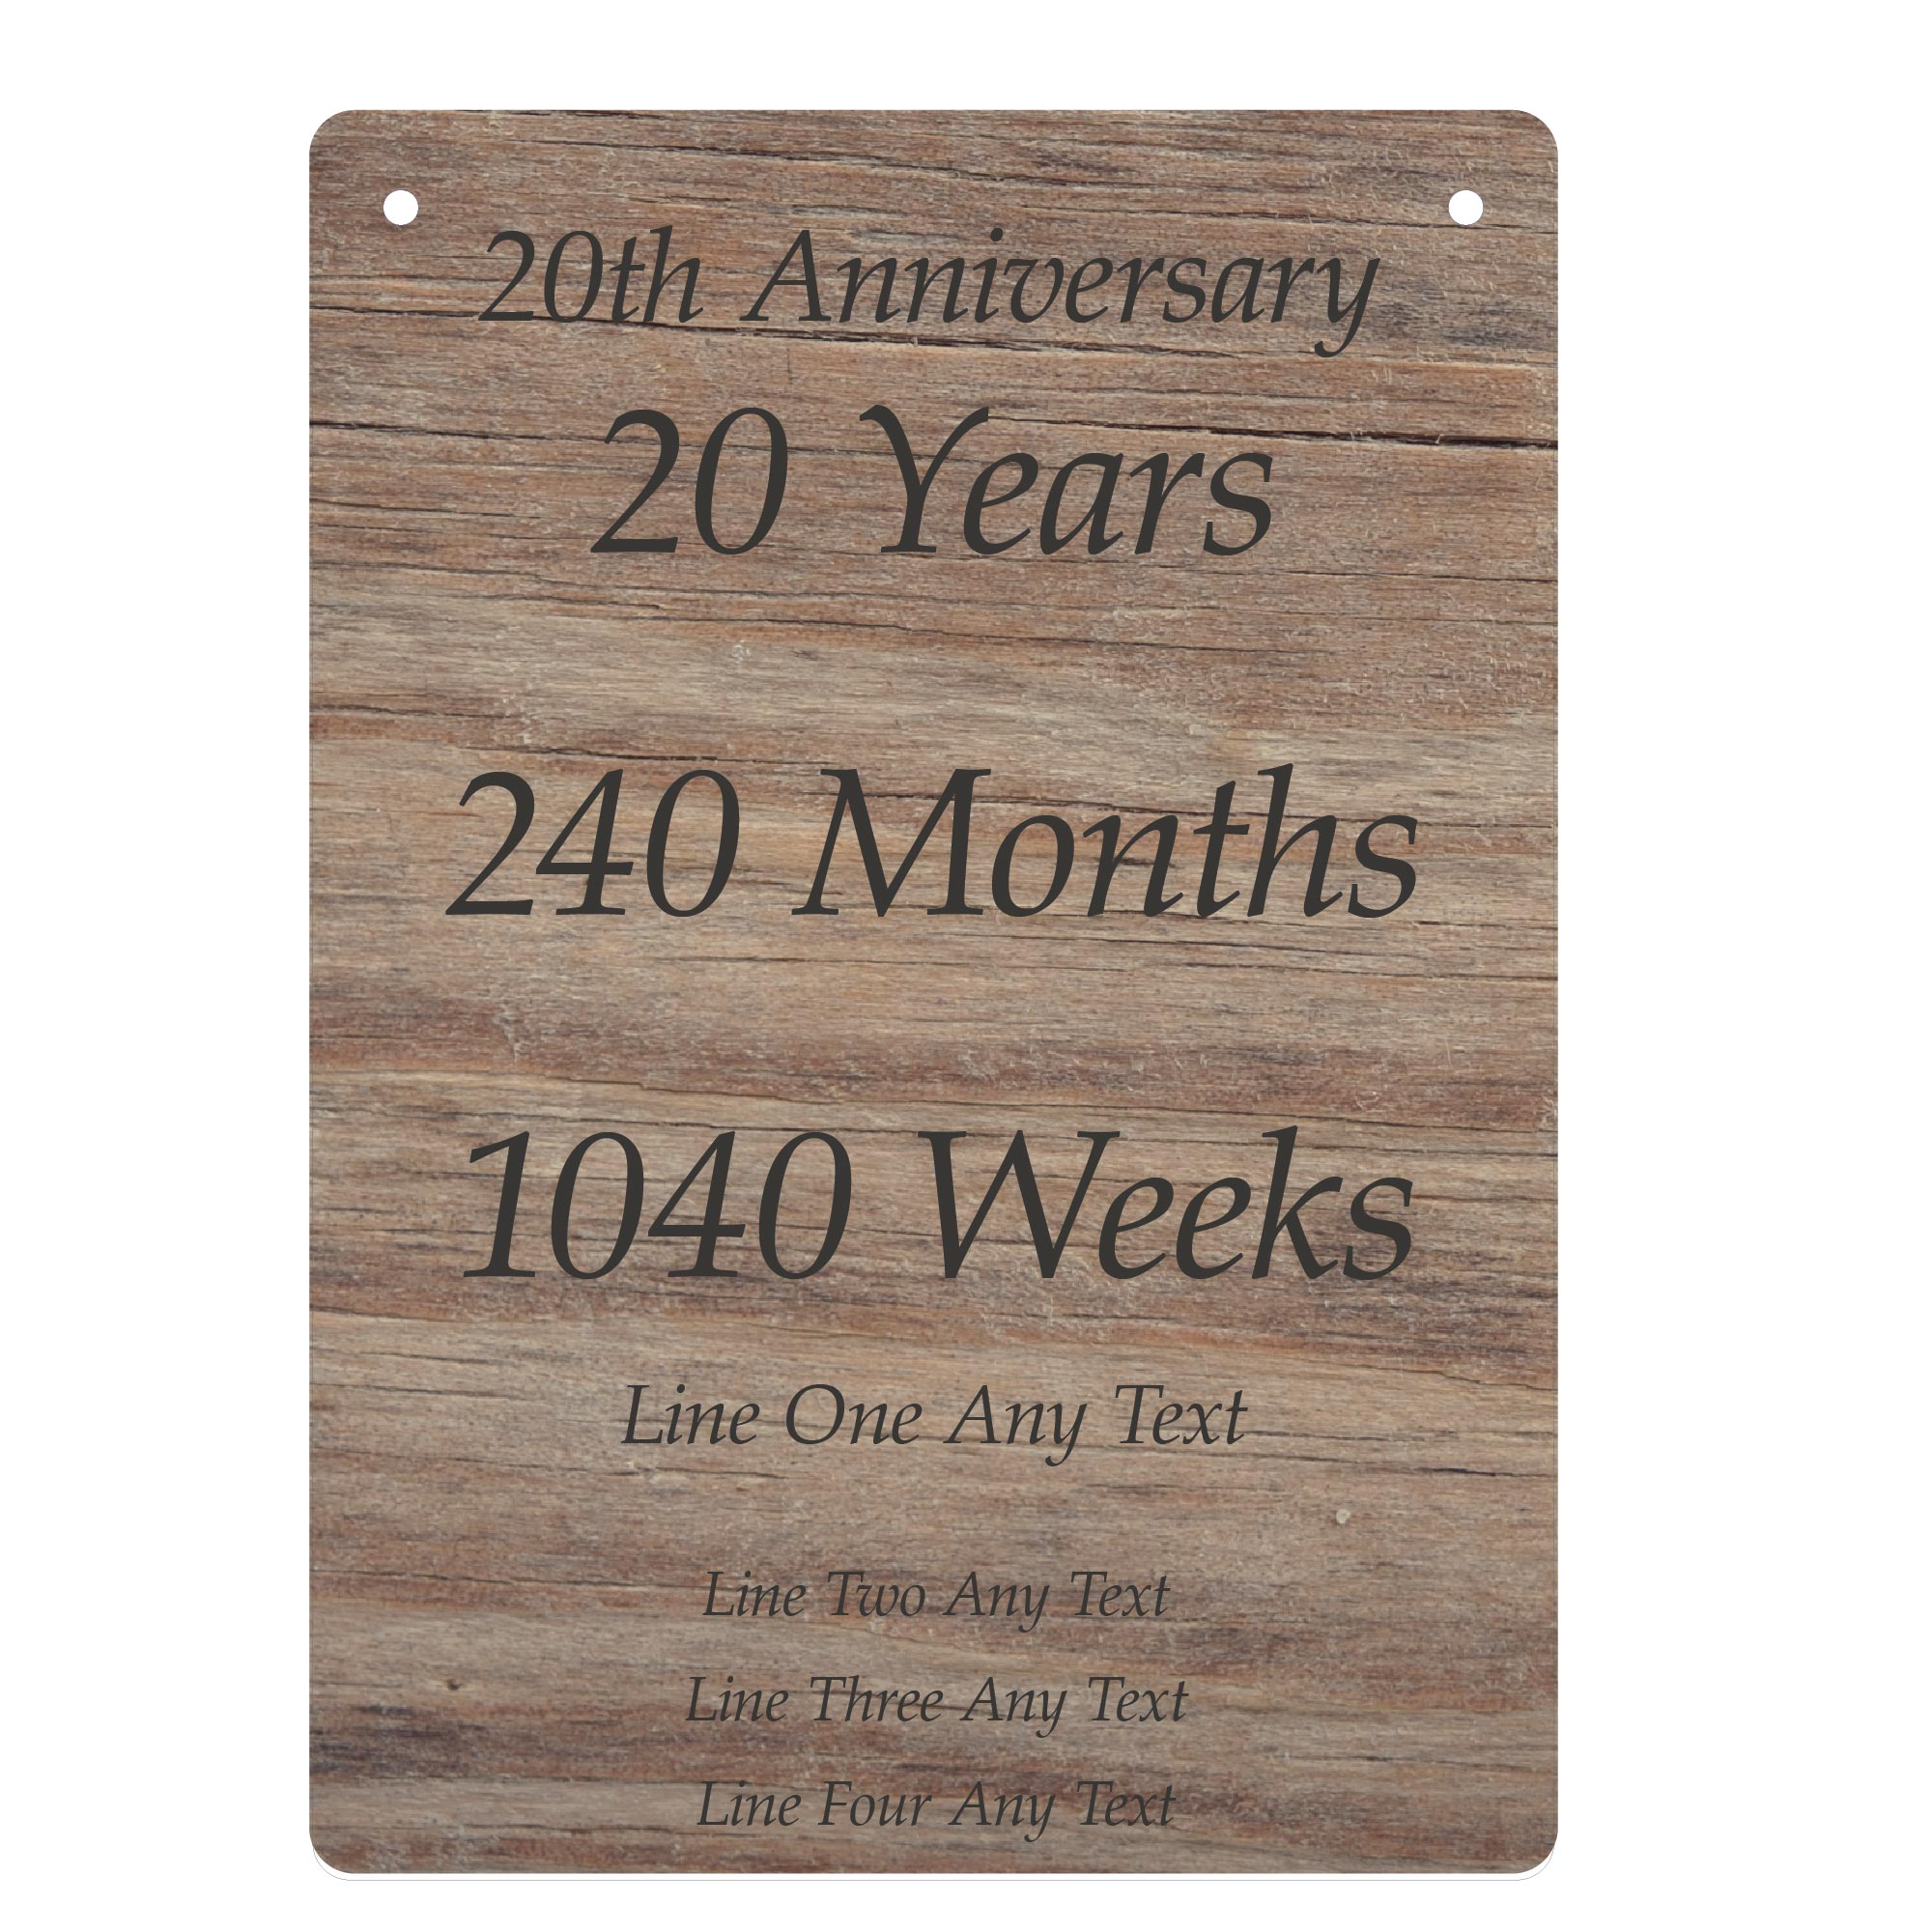 20th Anniversary Presents Personalised Gift Ideas For Couple Husband Wife Little Shop Of Wishes